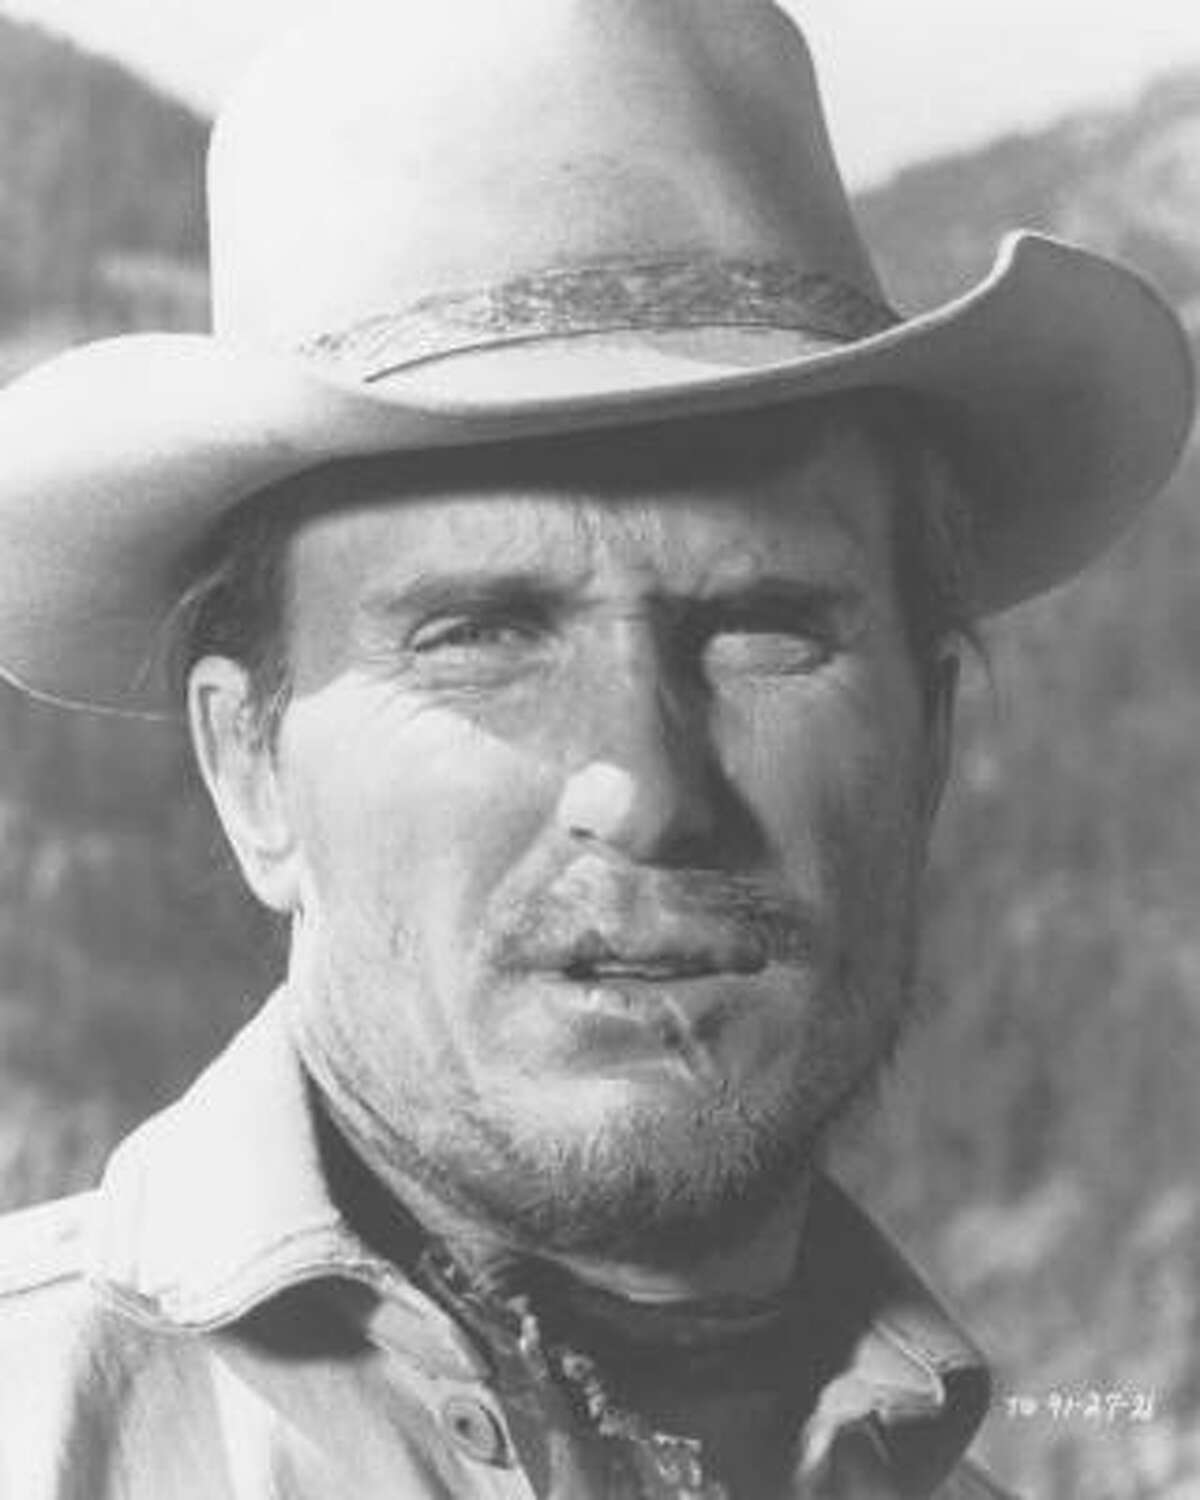 9. Robert Duvall: He's starred in only four westerns, two of them mini-series, but he and Kevin Costner are the only ones who still seem interested in the genre. Duvall exudes authentic western grit. Before Lonesome Dove, Geronimo, Open Range and Broken Trail, he was a creepy baddie in True Grit, above.